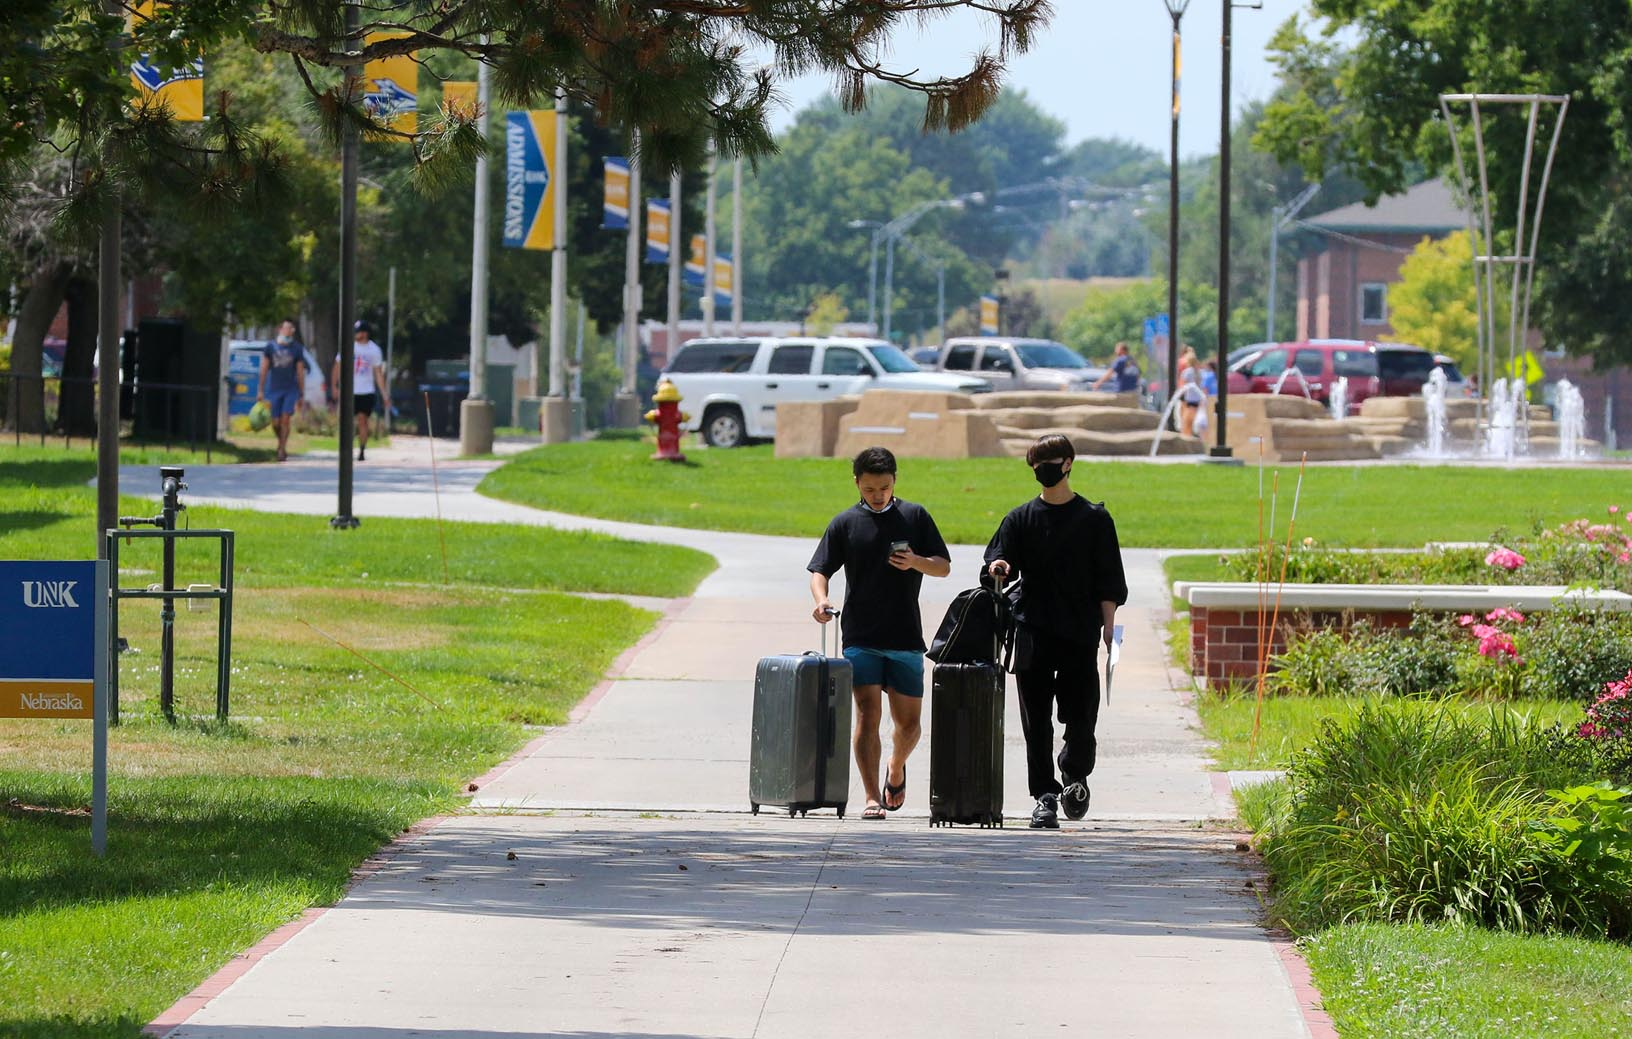 More than 1,400 students are expected to live in UNK residence halls this semester. Most of them will move in this week.